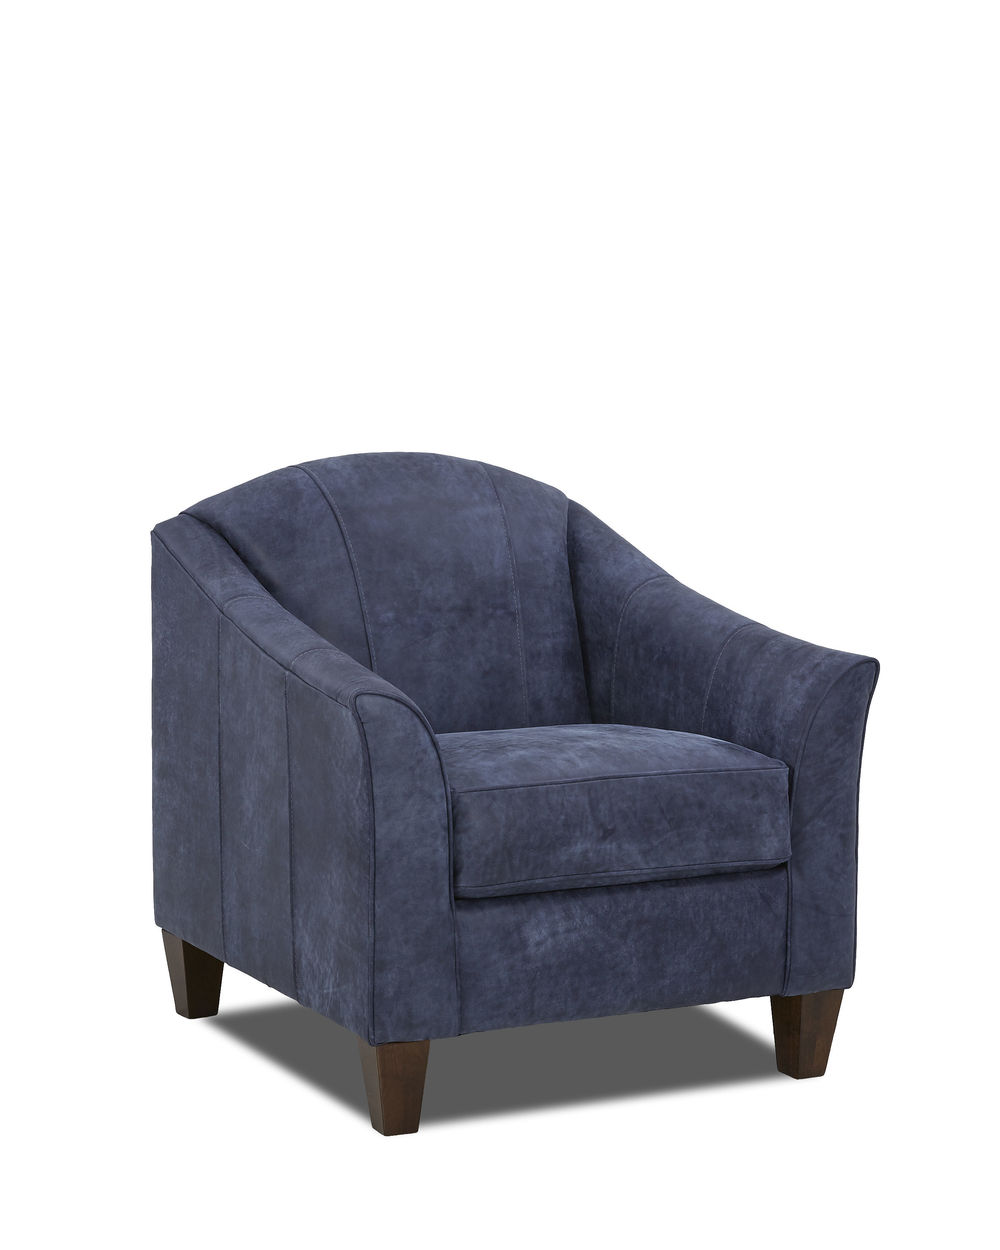 Klaussner Home Furnishings - Occasional Chair